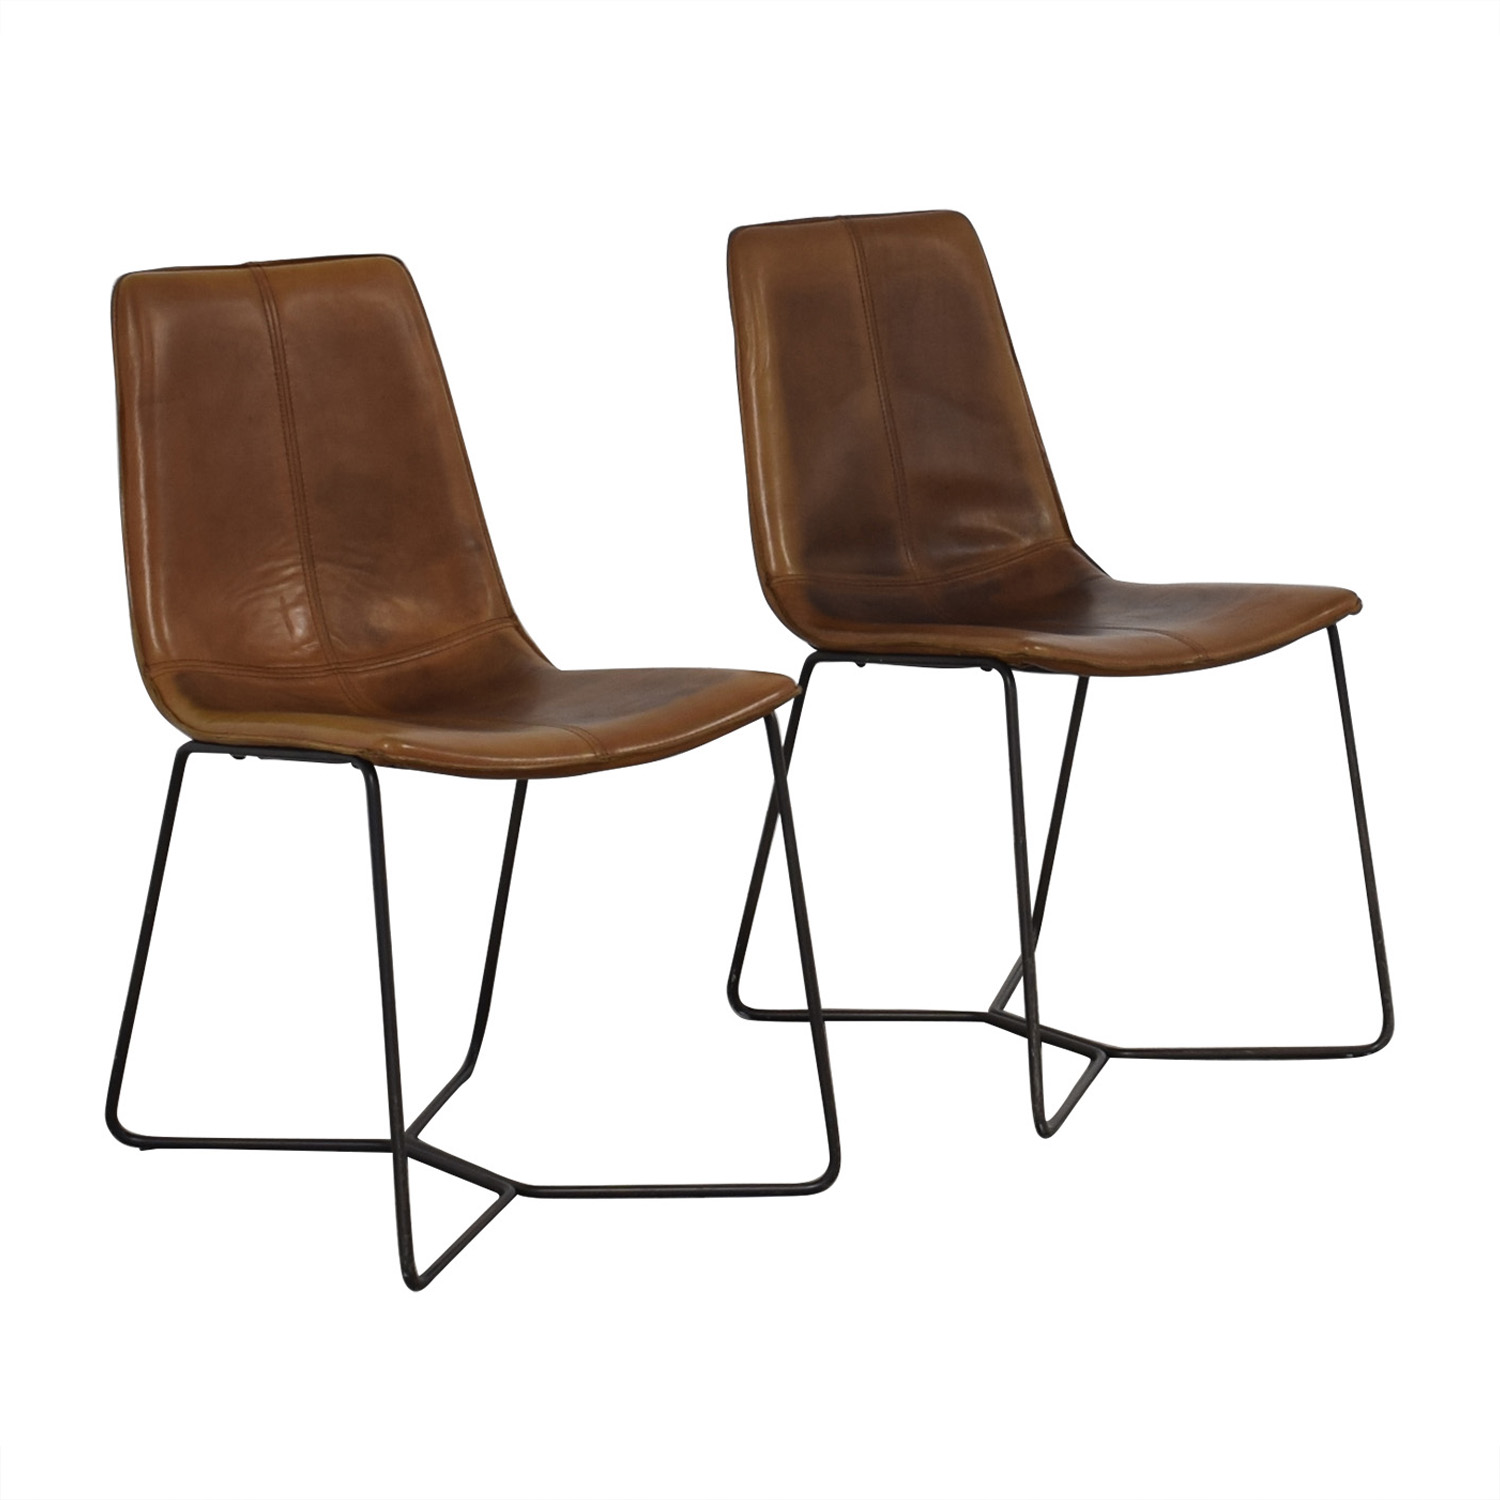 West Elm West Elm Brown Dining Chairs on sale